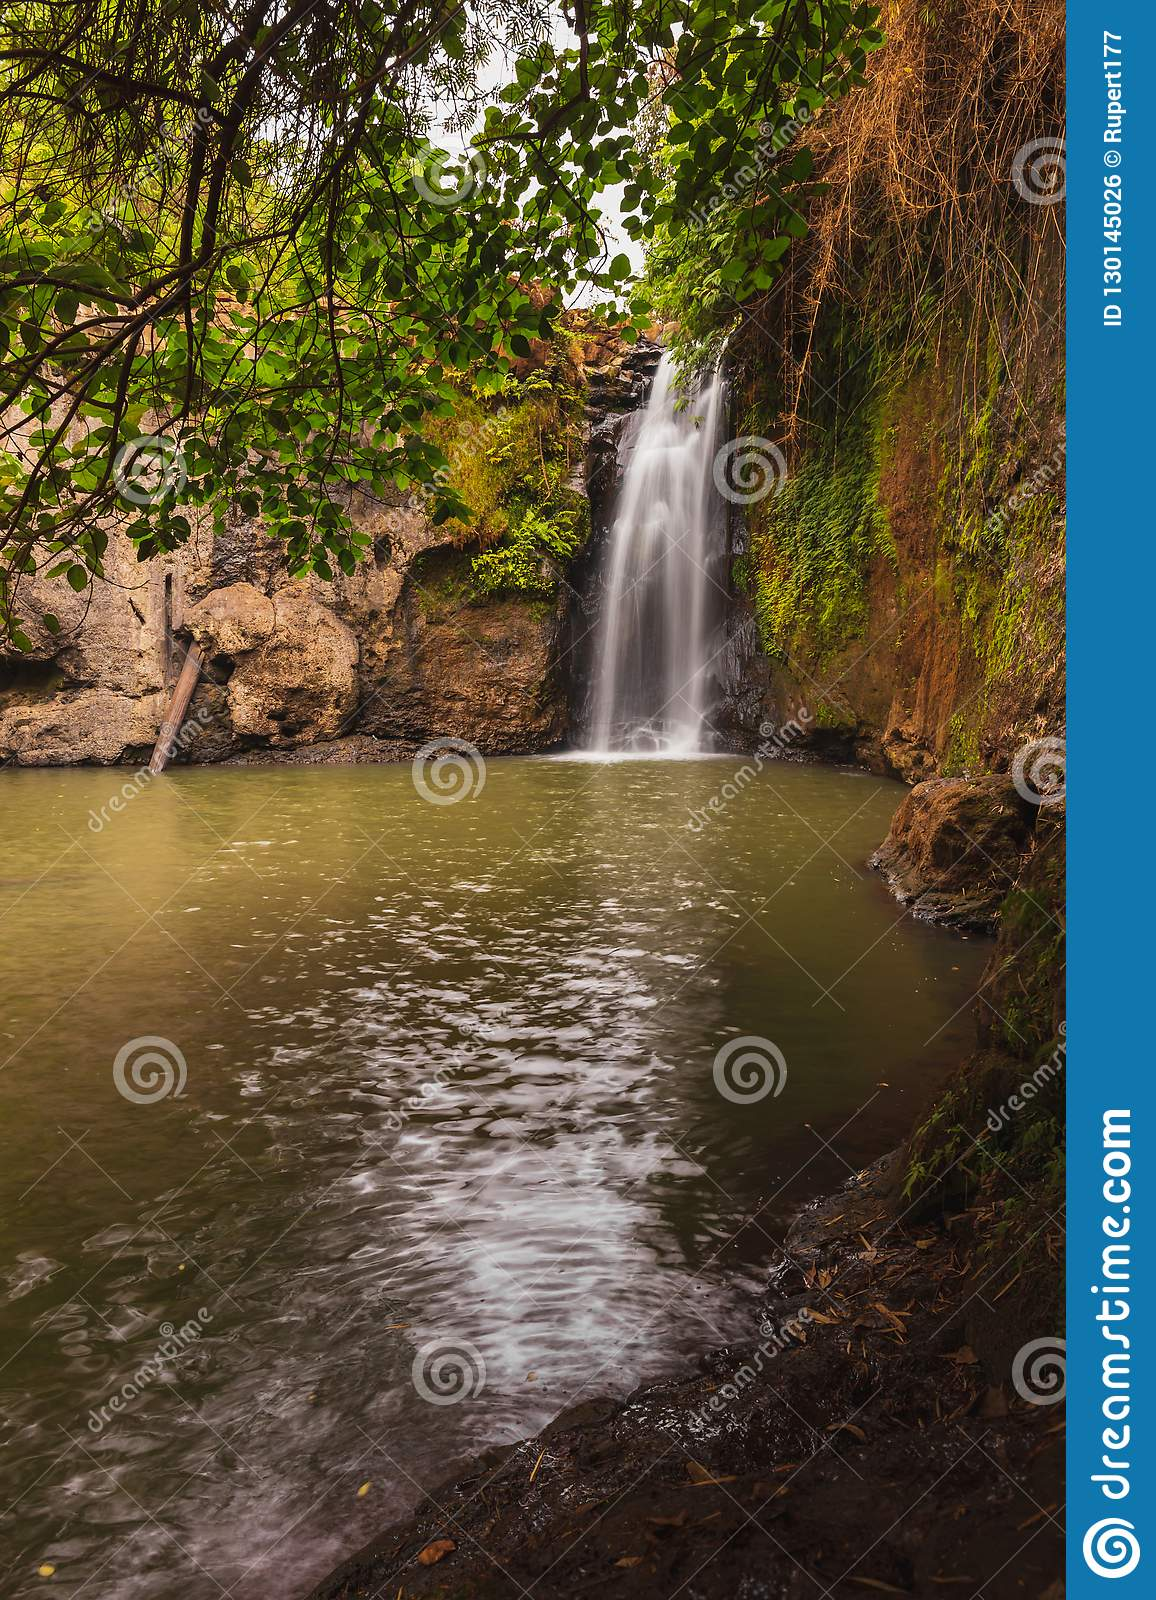 Brown and green waterfall spring from overhanging tree shade.